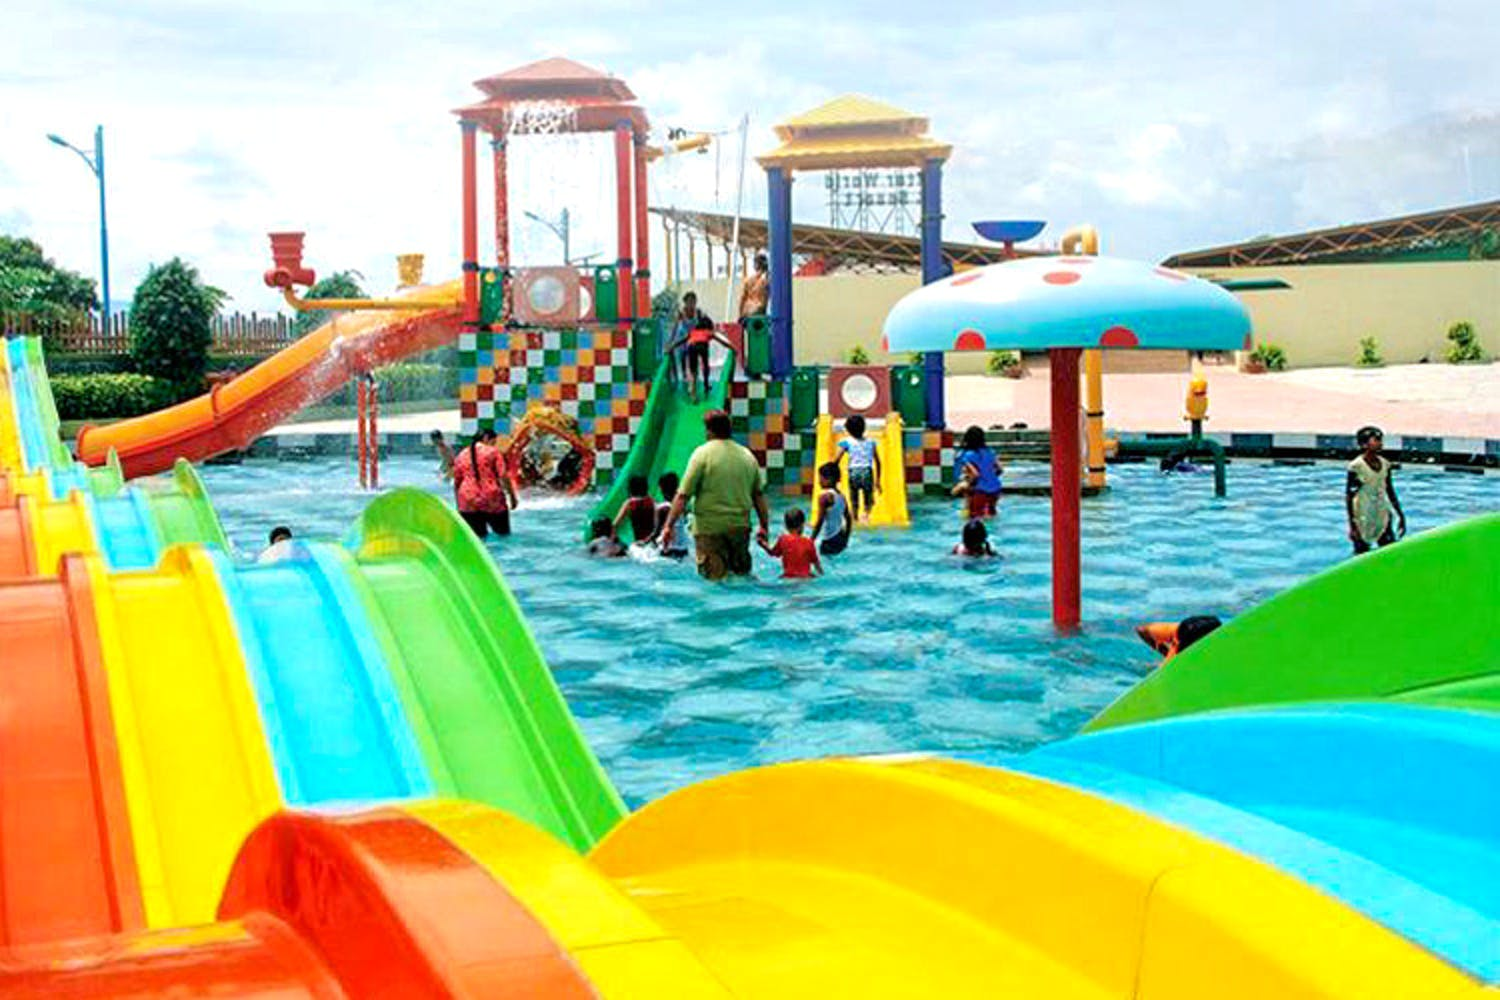 Water park,Fun,Leisure,Chute,Amusement park,Playground,Public space,Outdoor play equipment,Aqua,Recreation